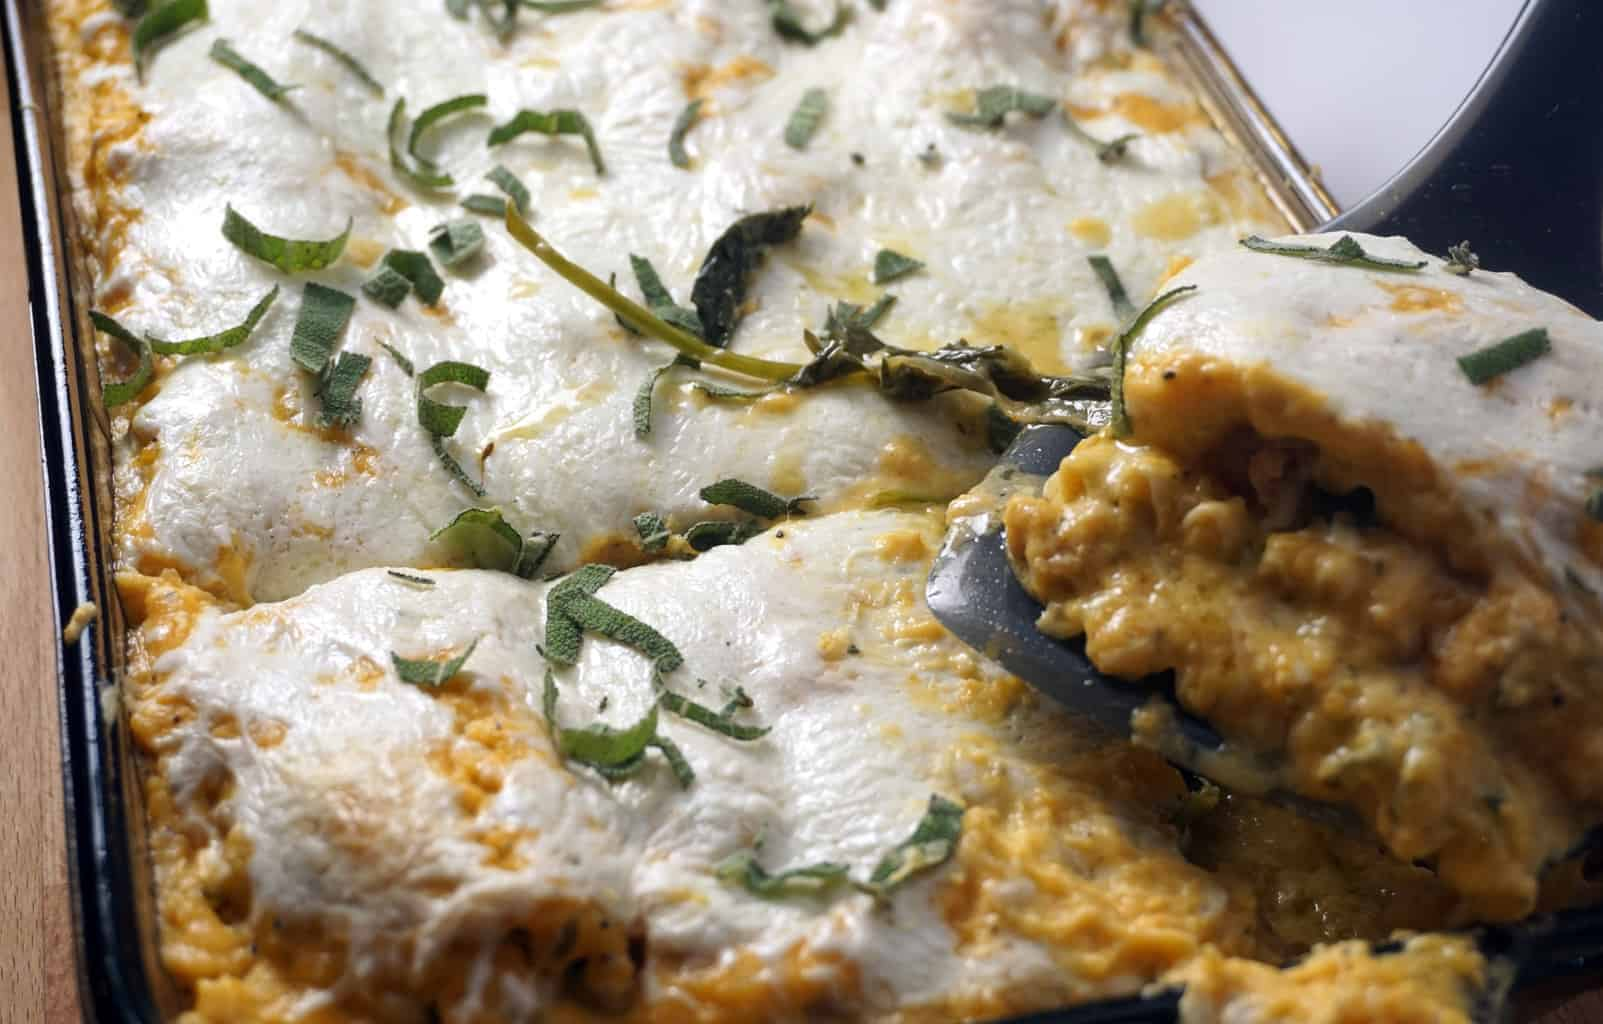 Sausage, Kale, and Butternut Squash Lasagna - The moistest lasagna you will ever put in your mouth. Spicy chicken sausage and sweet, caramelized onions complement the butternut squash and kale so perfectly.- lilsweetspiceadvice.com